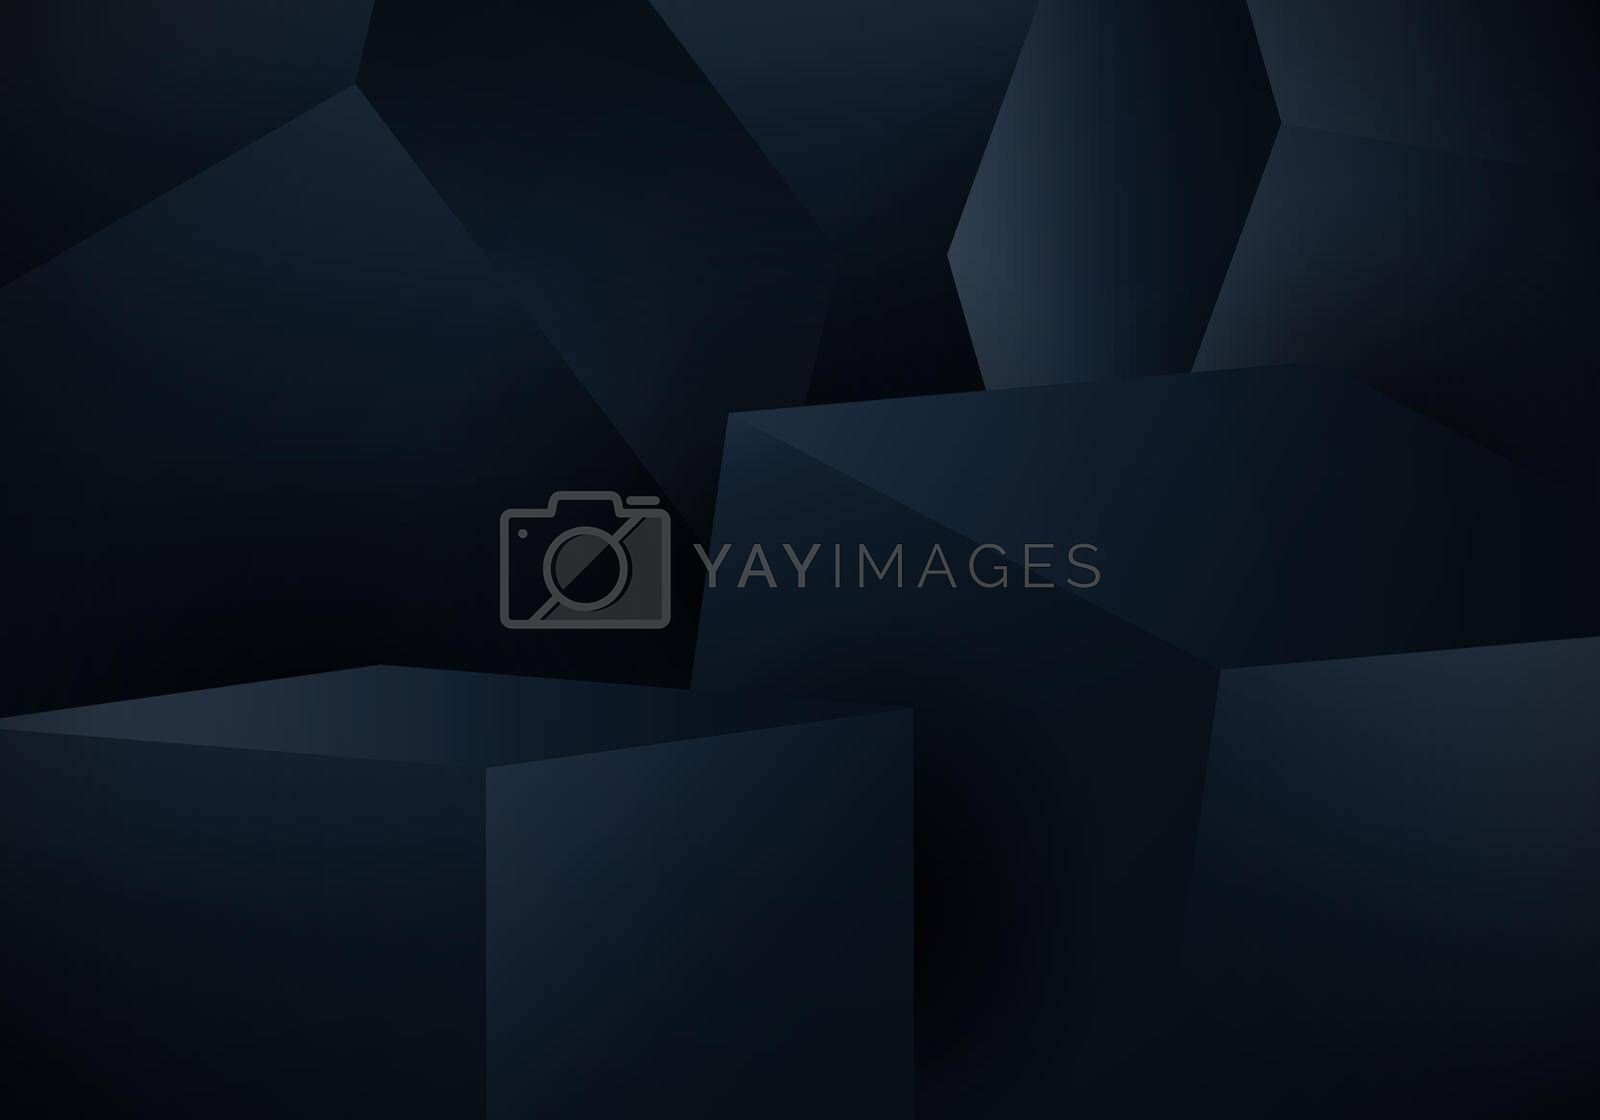 Royalty free image of Abstract 3D blue cube box on dark background by phochi